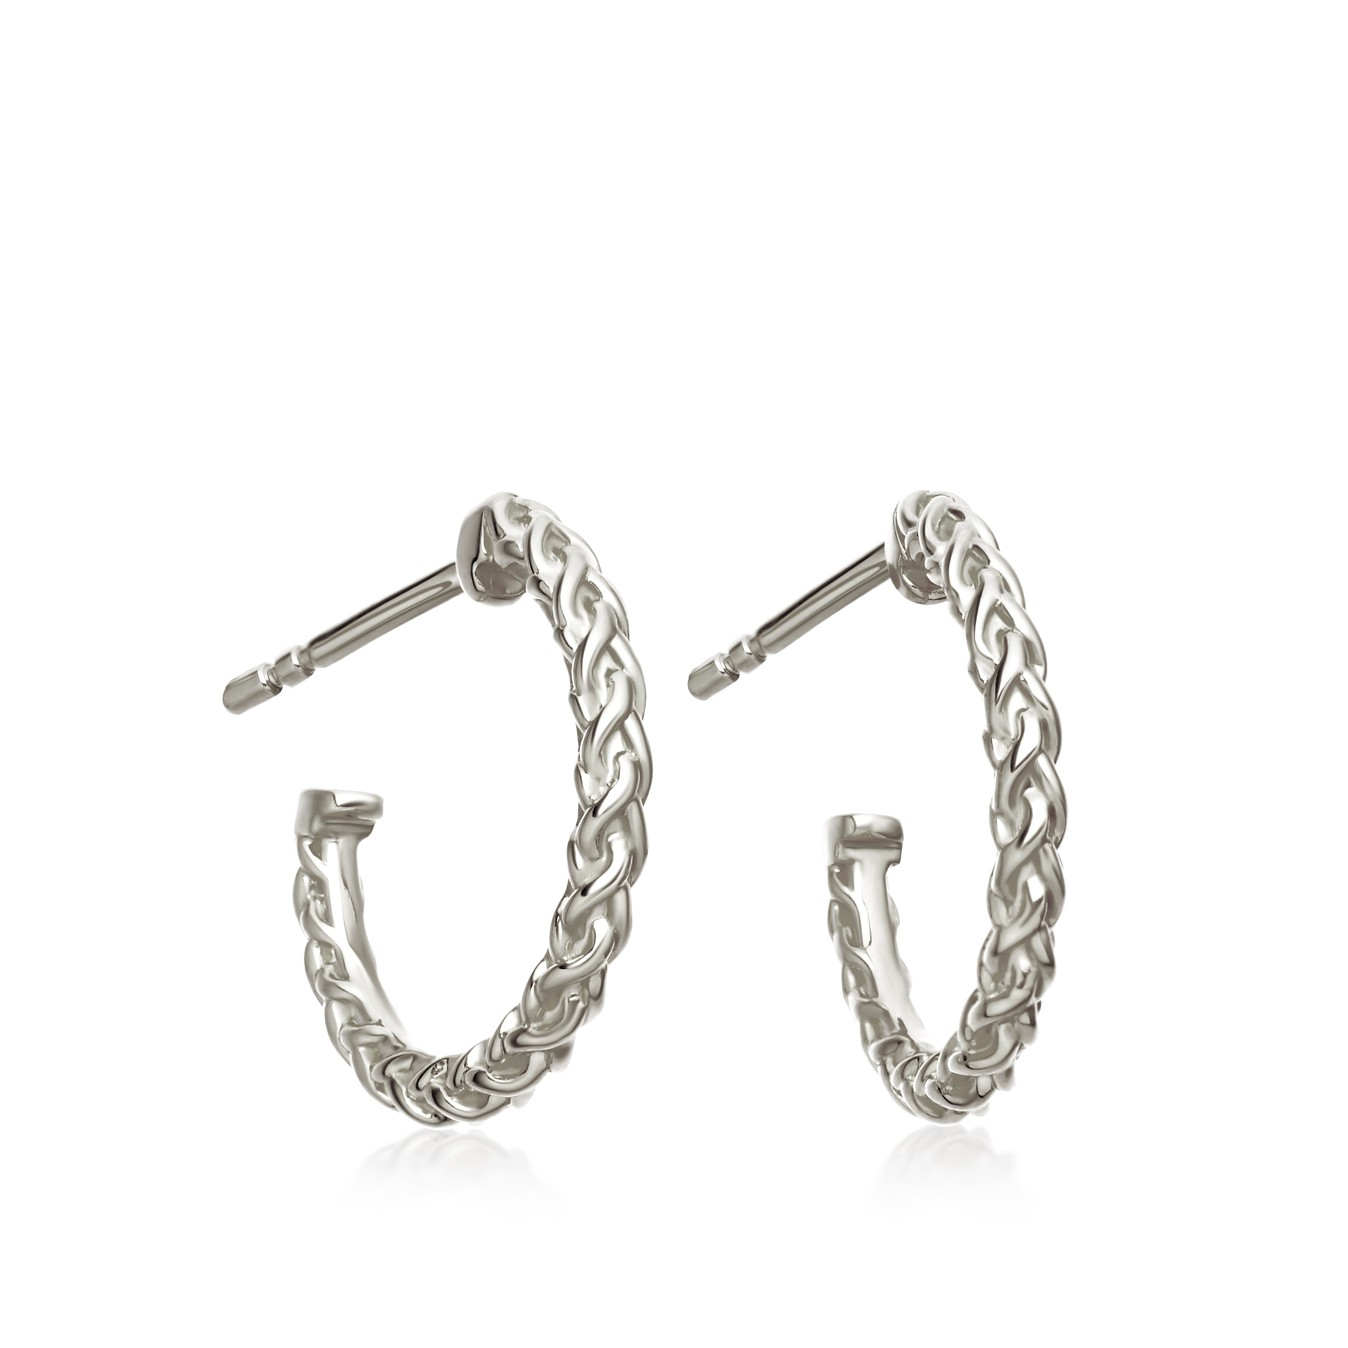 Astley Clarke Mini Spiga Hoop Earrings - British luxury jewellery - UK style blog